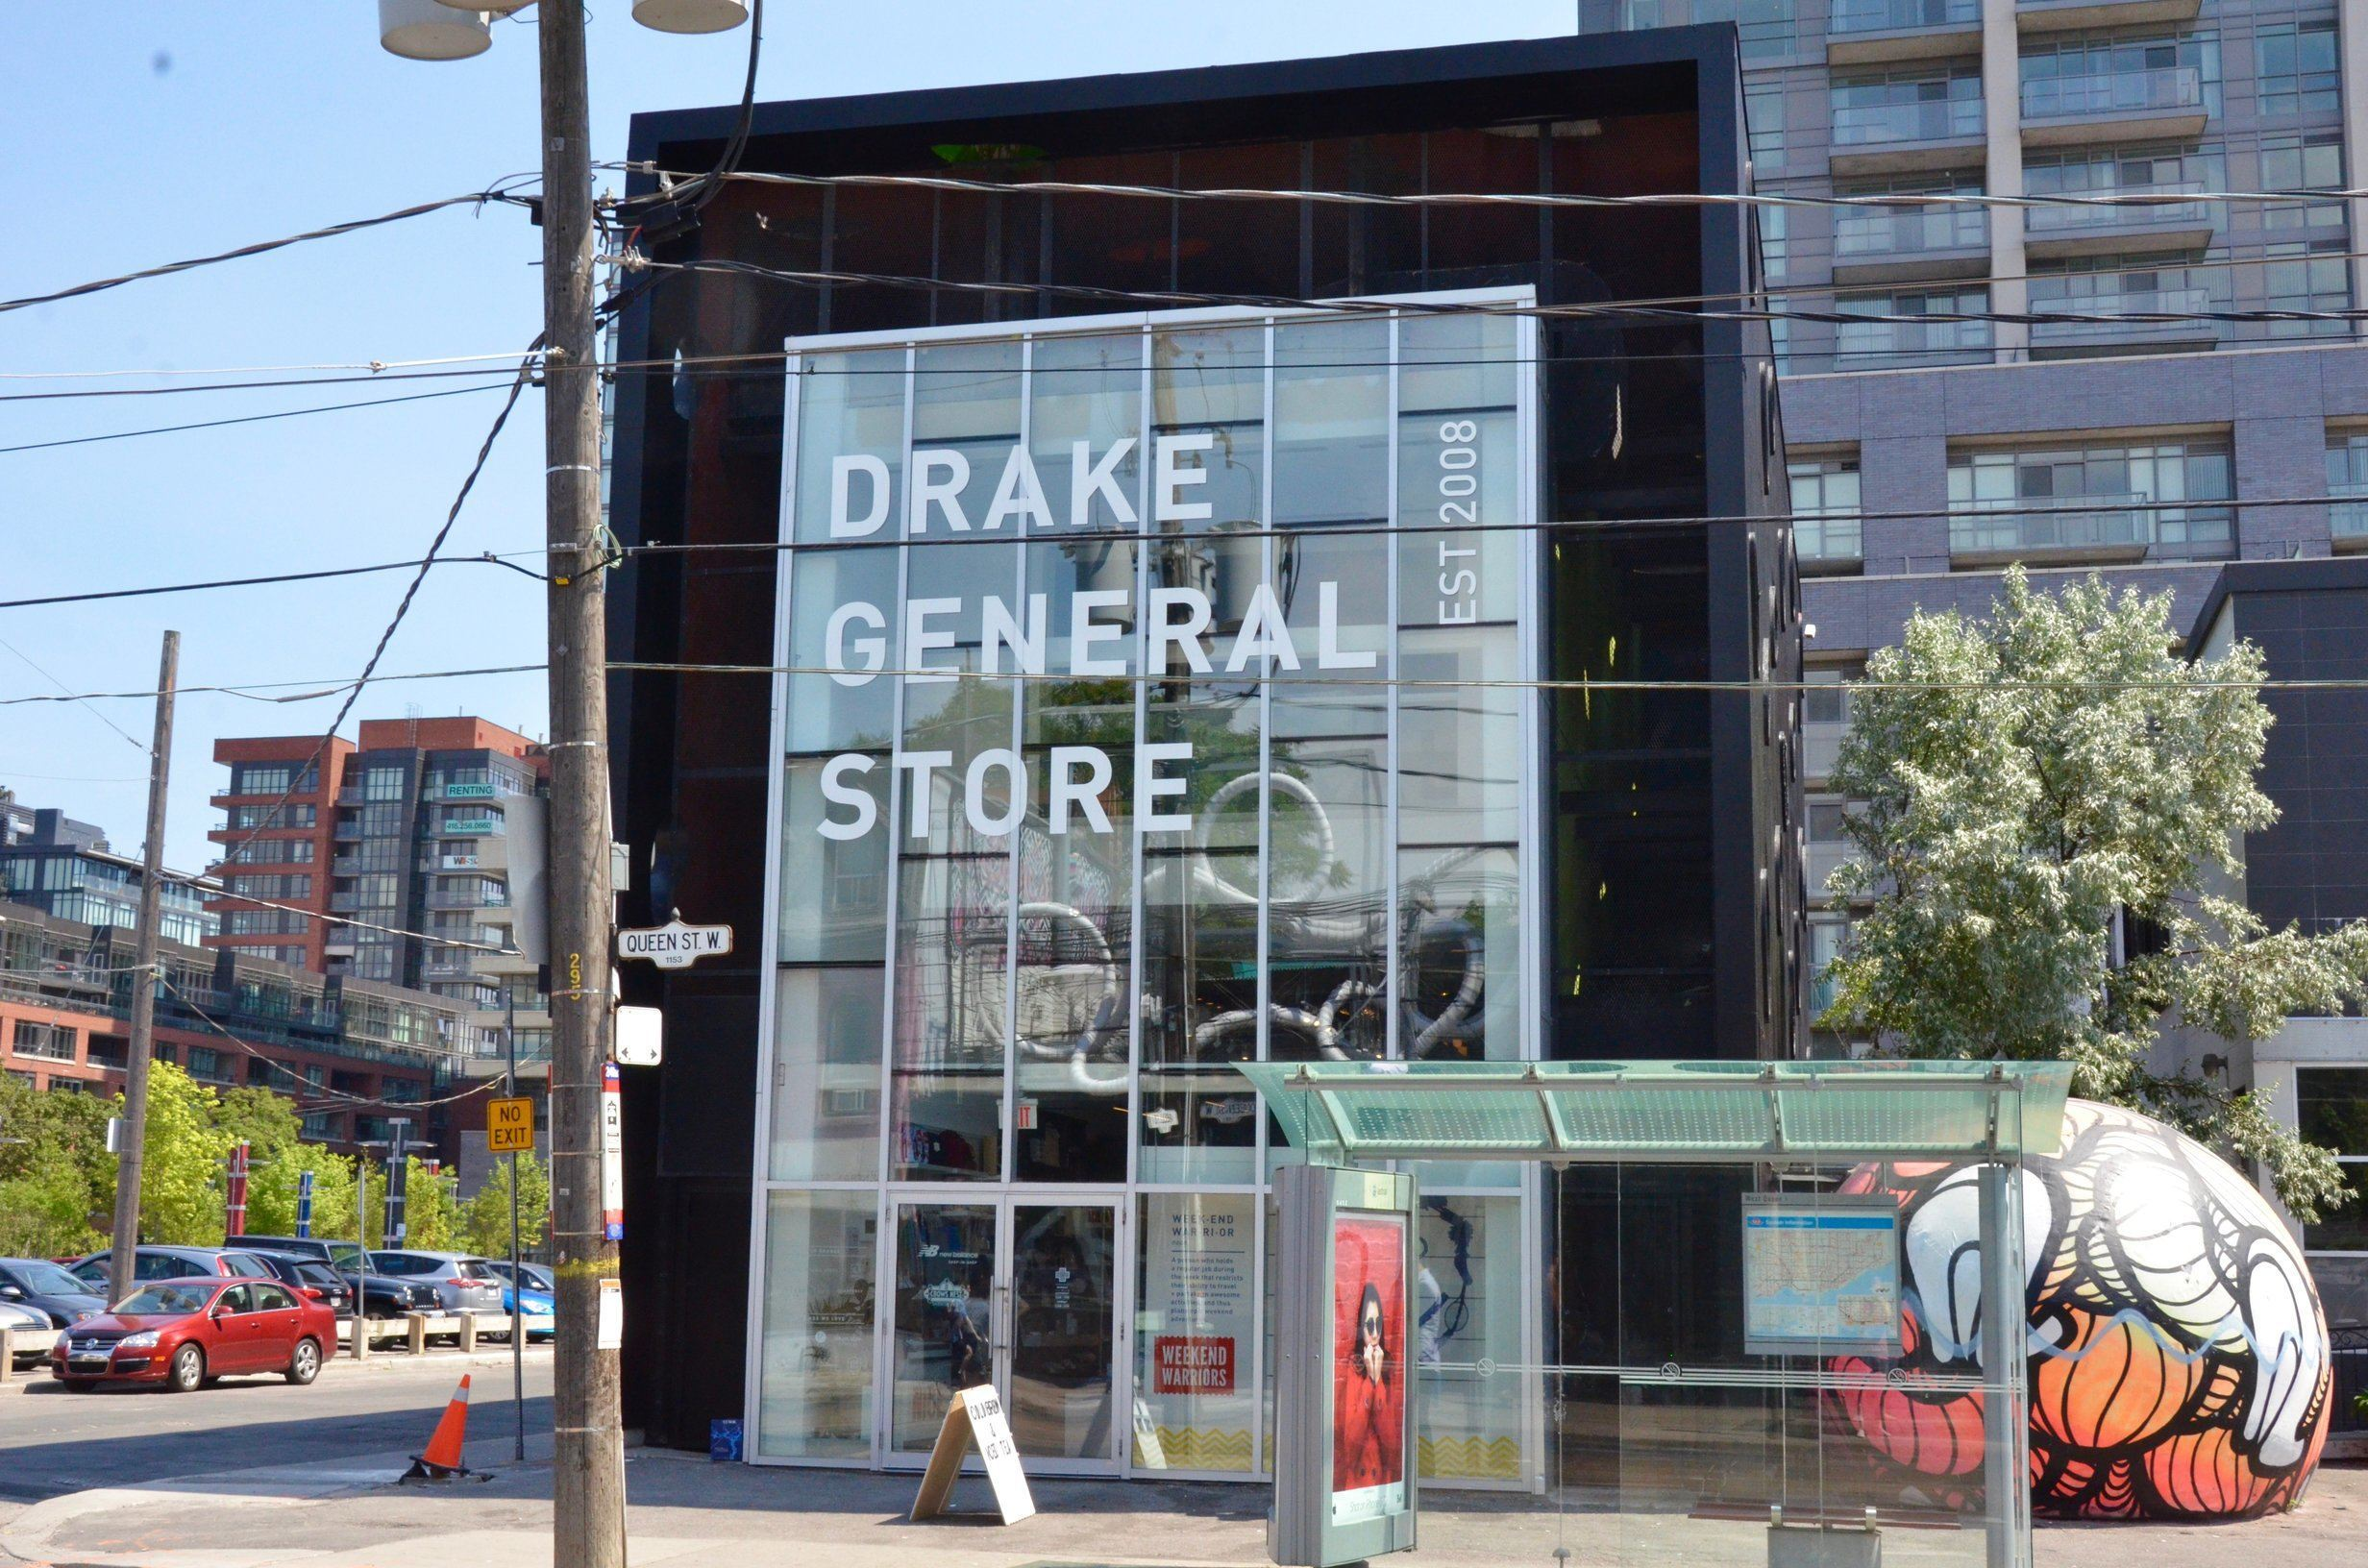 Inside the brand new Drake General Store on Queen West